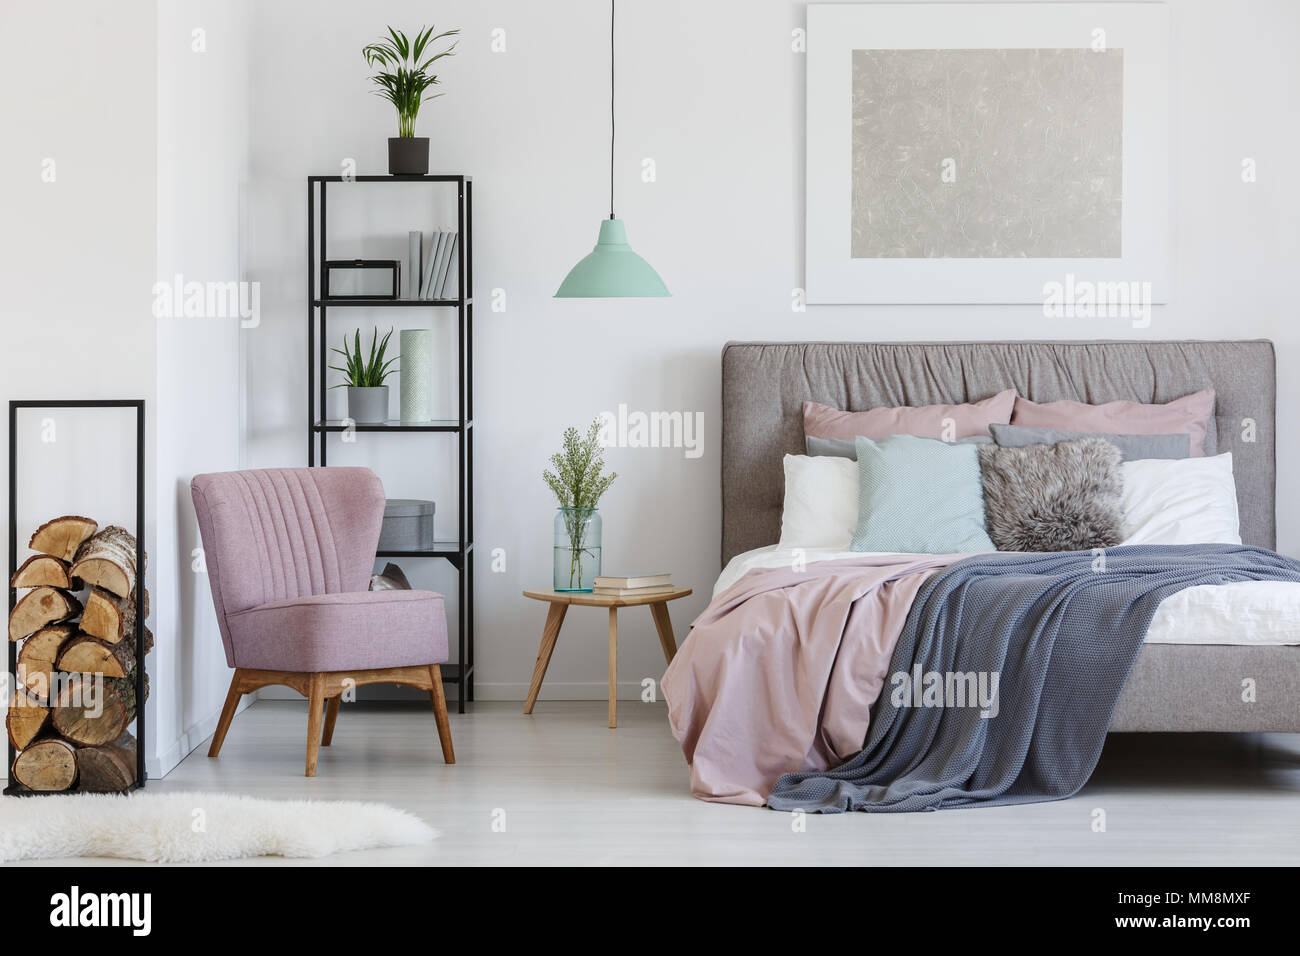 Pink comfy armchair placed in the corner of teen girl's room - Stock Image